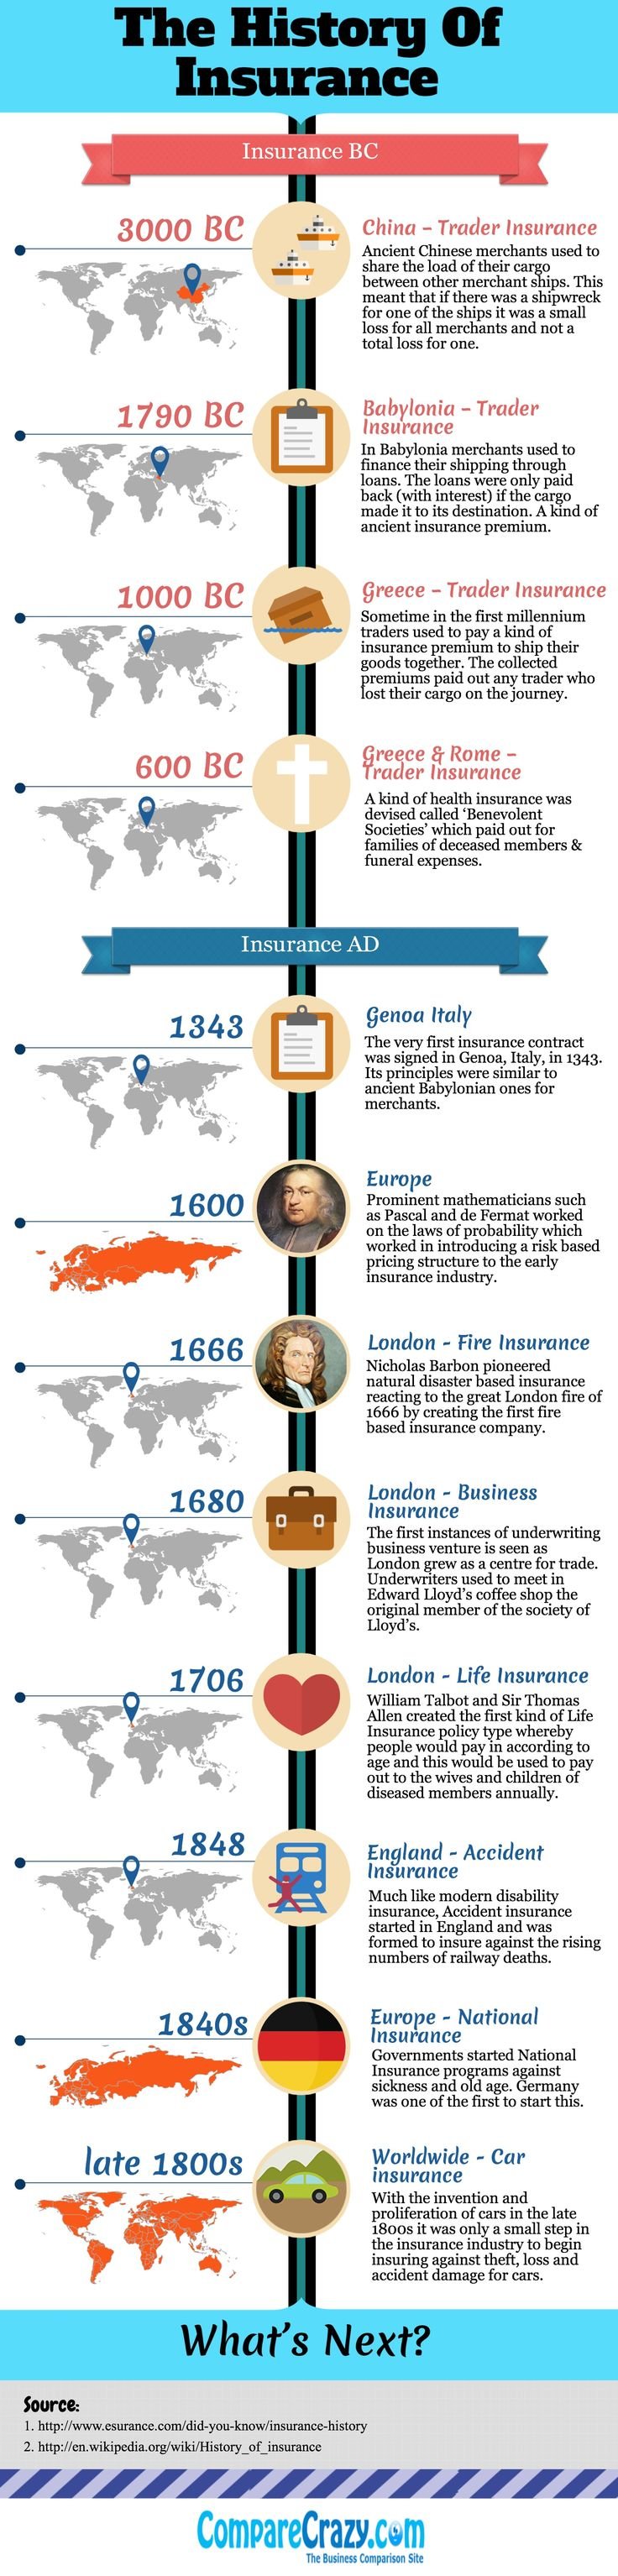 The History Of Insurance #infographic